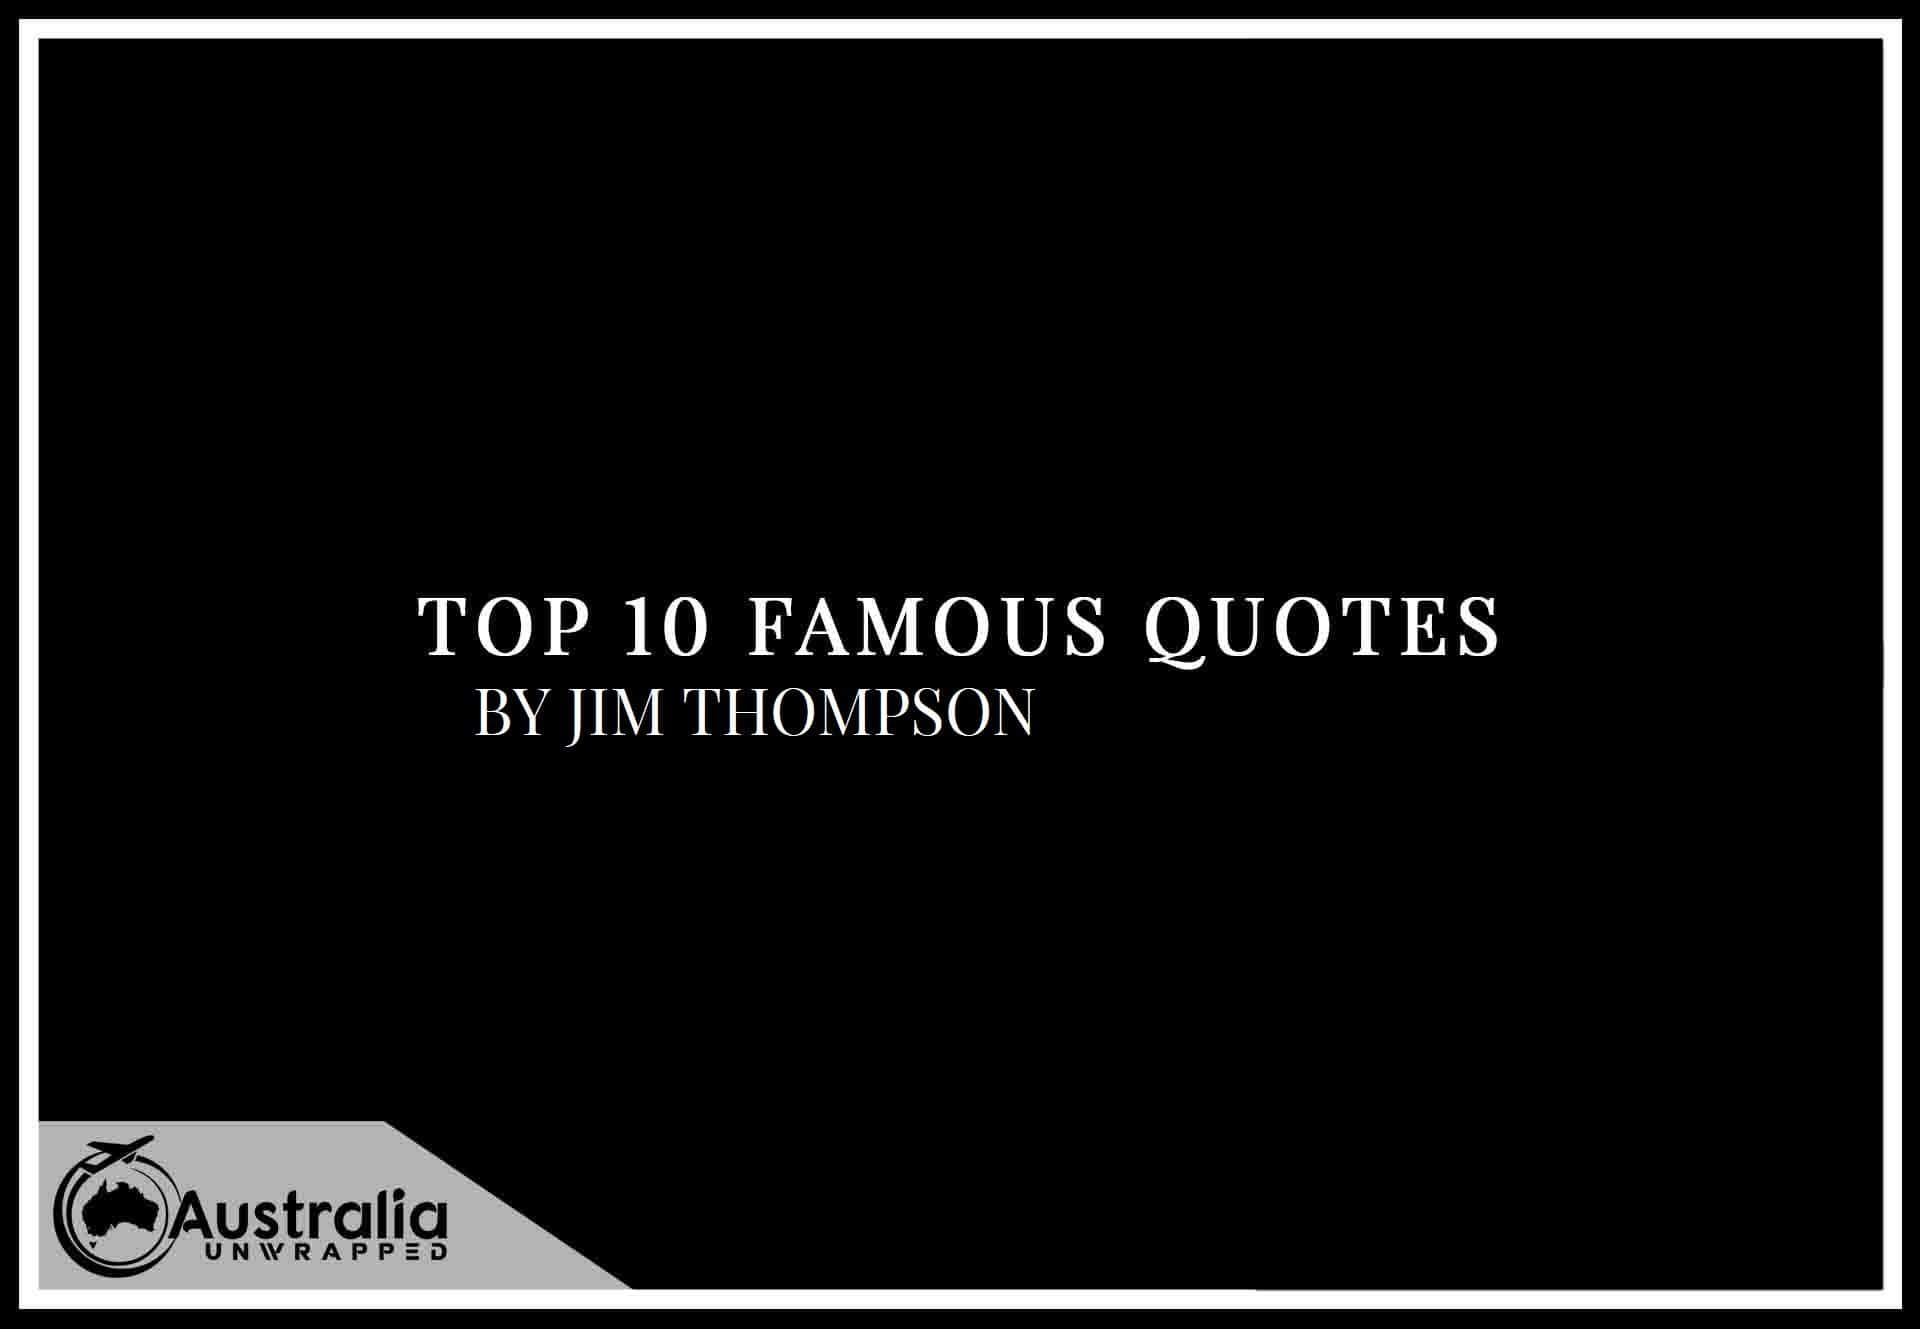 Top 10 Famous Quotes by Author Jim Thompson